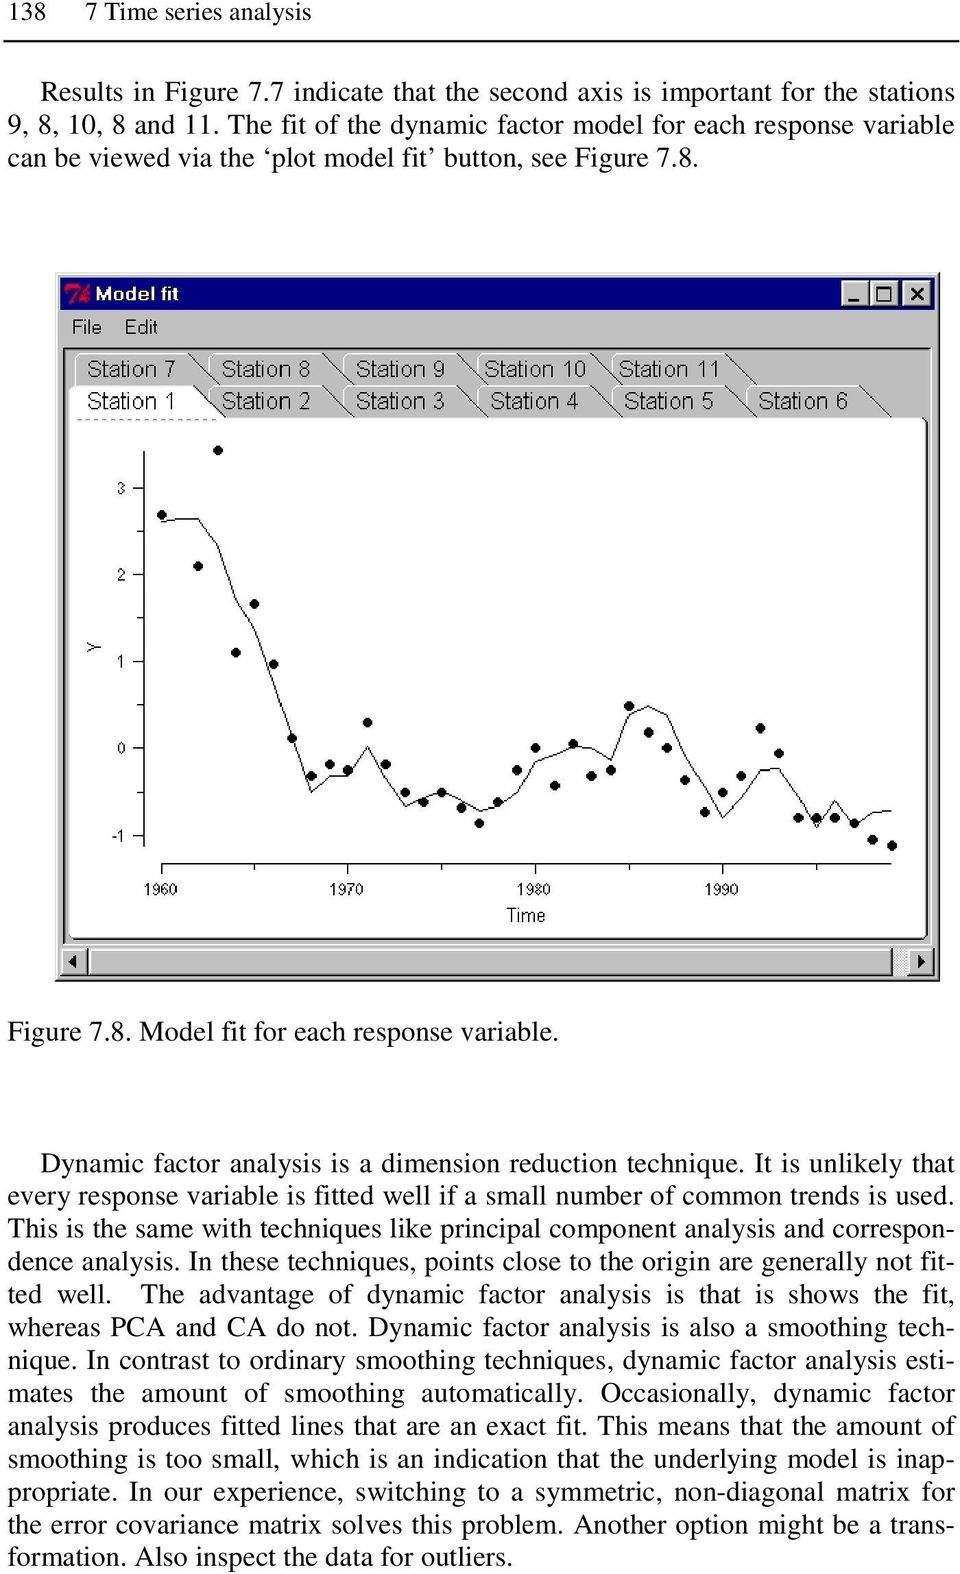 Dynamic factor analysis is a dimension reduction technique. It is unlikely that every response variable is fitted well if a small number of common trends is used.